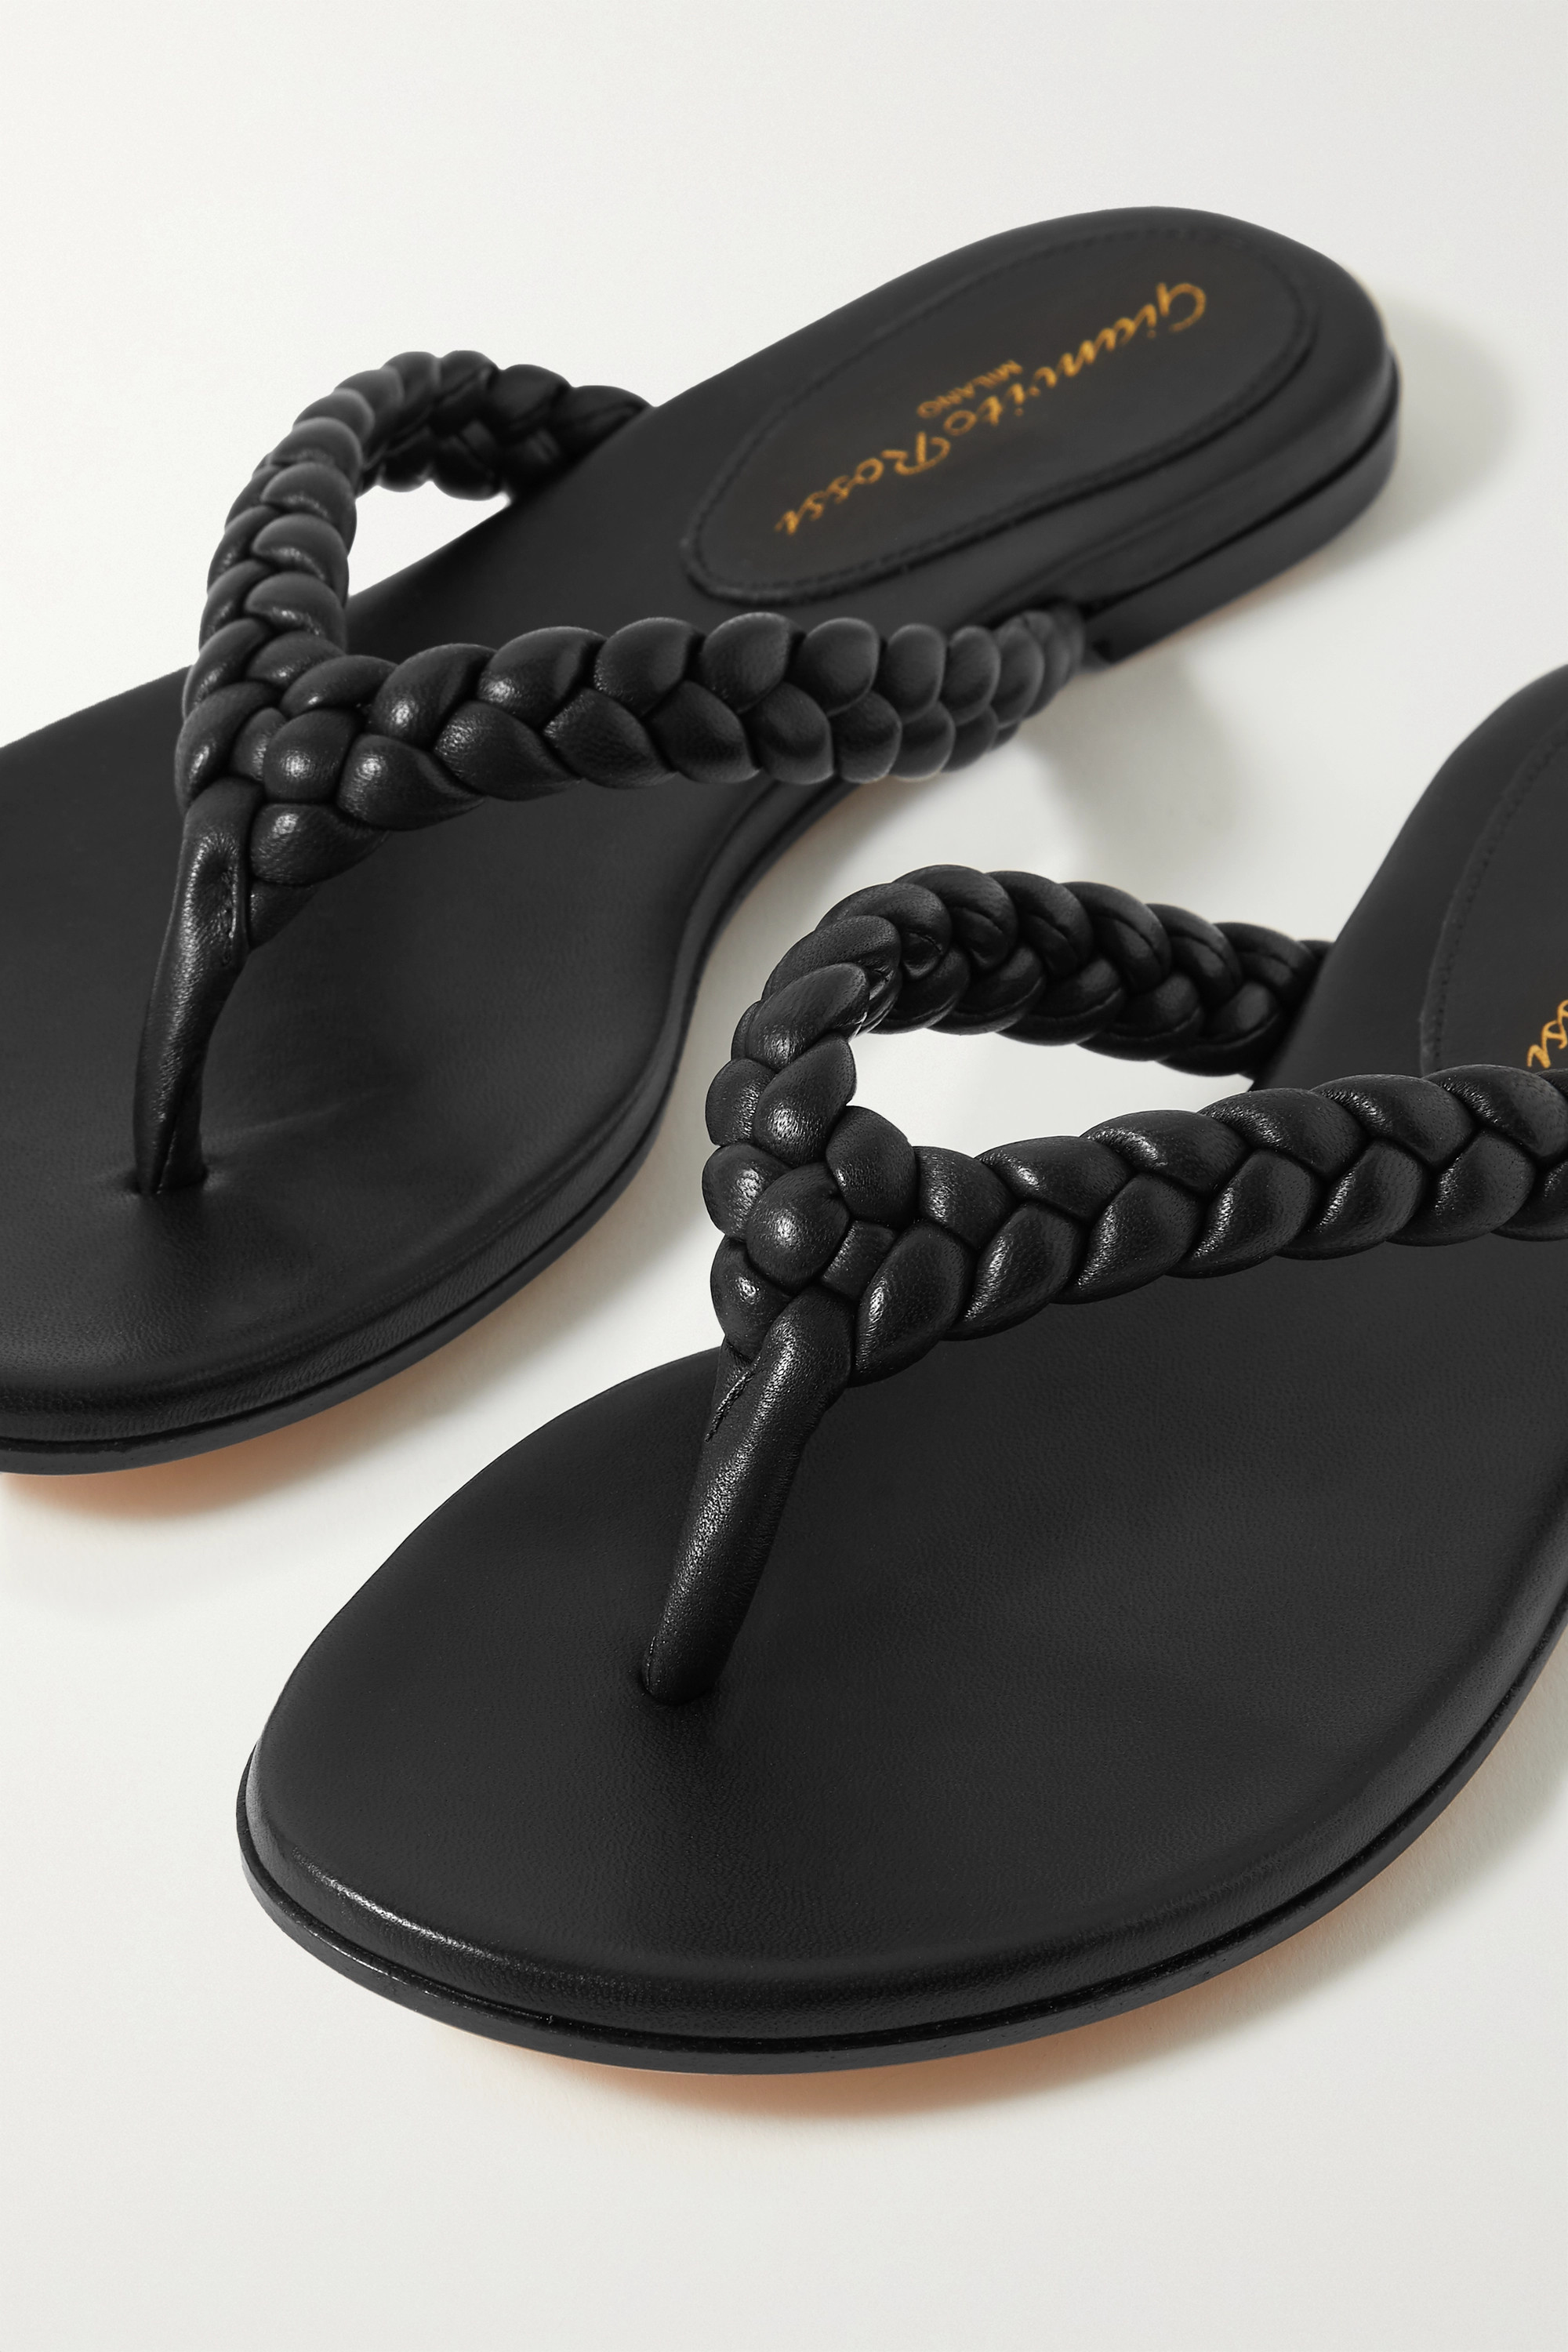 Gianvito Rossi Tropea braided leather flip flops